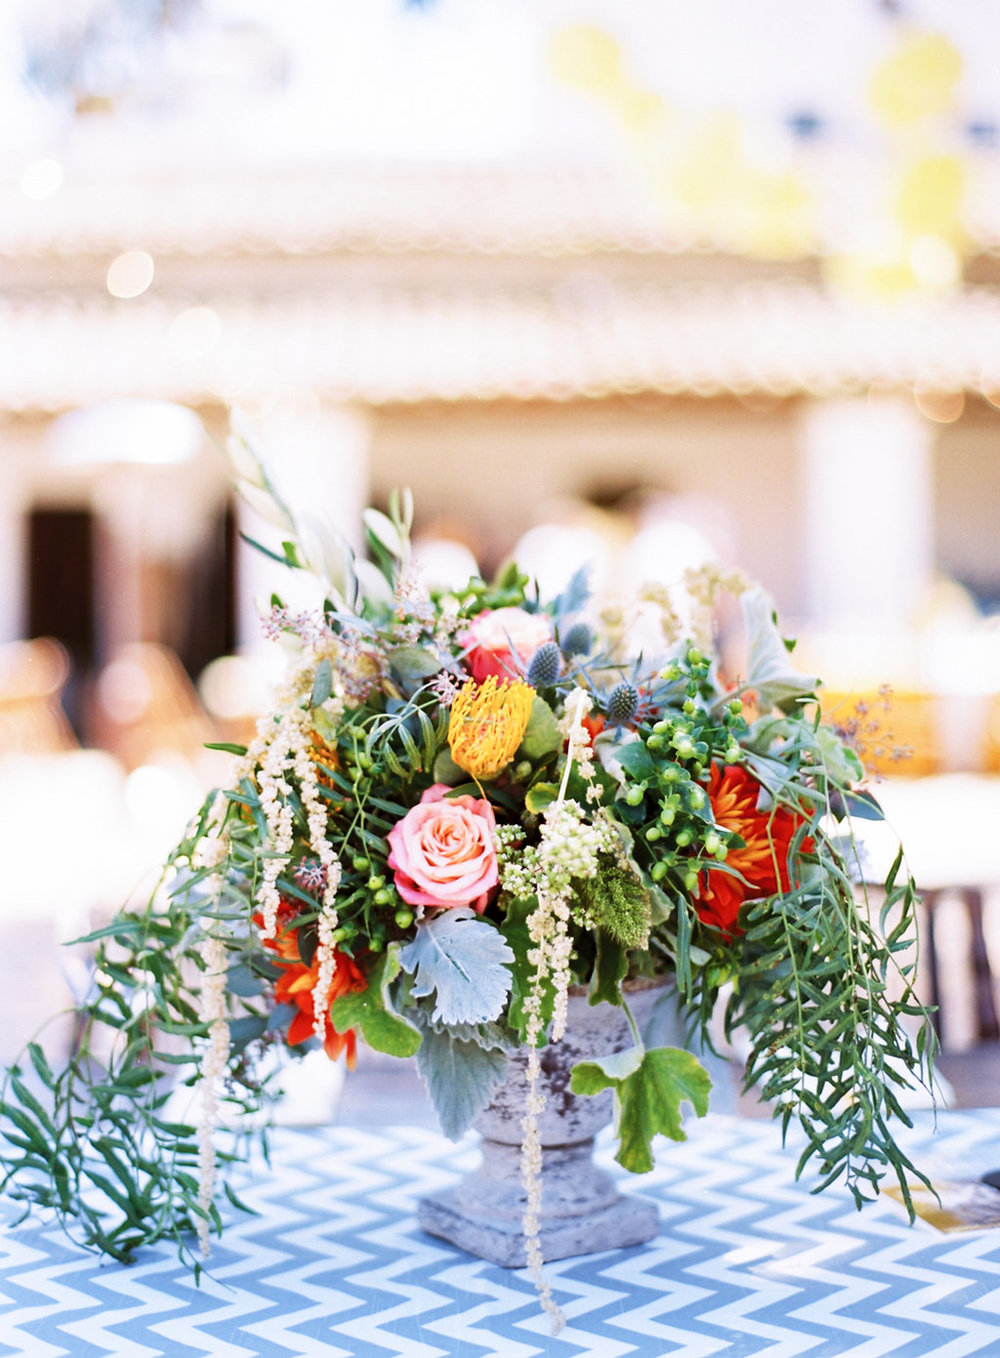 santabarbarawedding.com | Photo: Clarissa Koenig Photography | Yellow and gray wedding ideas